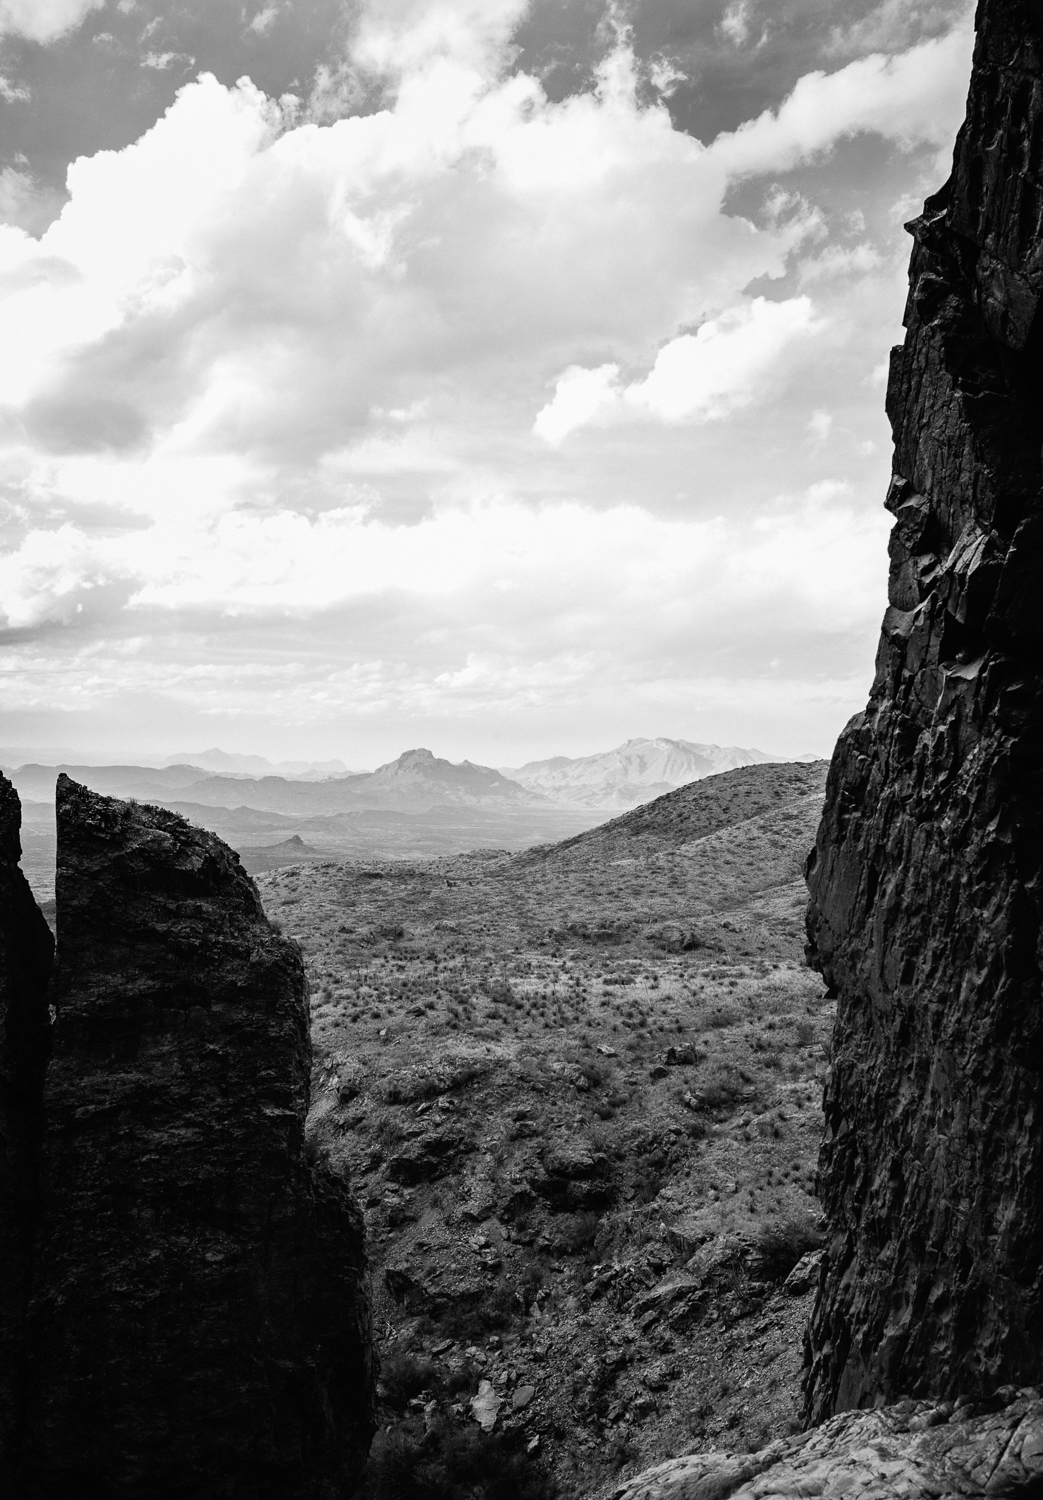 """The view from the edge of the waterfall at""""The Window,"""" in Big Bend National Forest, Texas. Michael Lim Photography 2015 ©"""